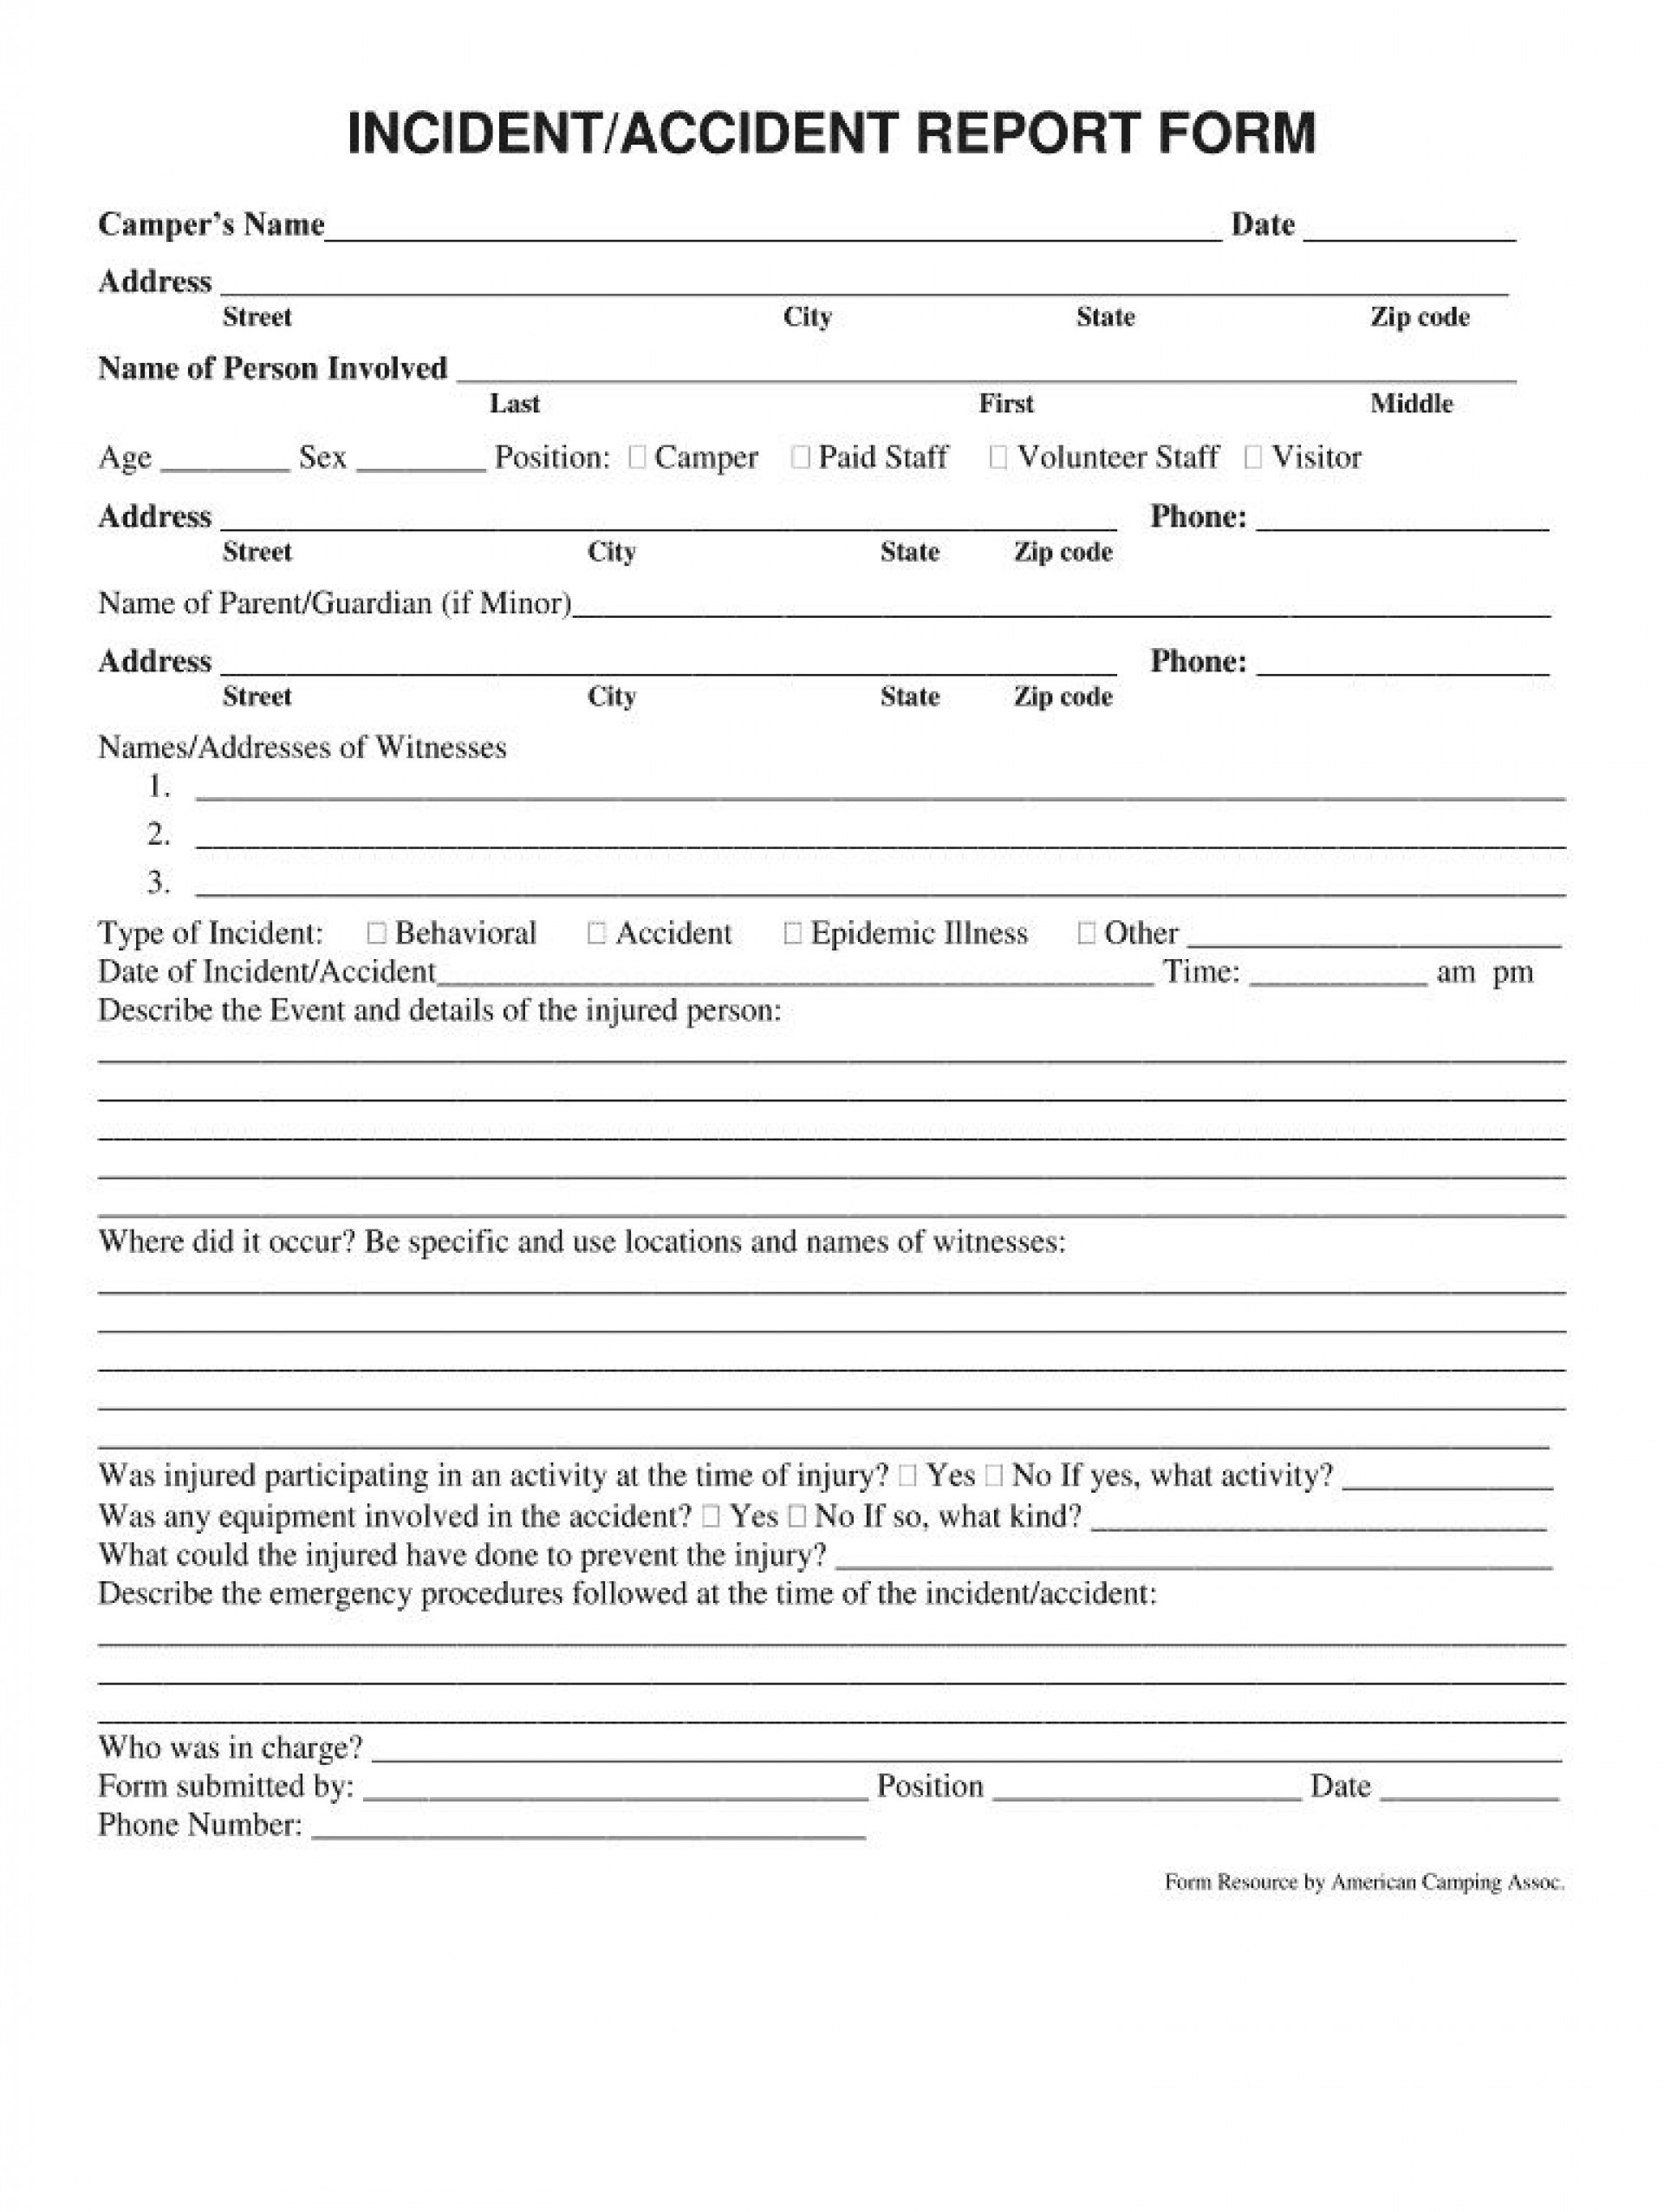 007 Outstanding Accident Report Form Template Photo  Free South Africa Pdf1920